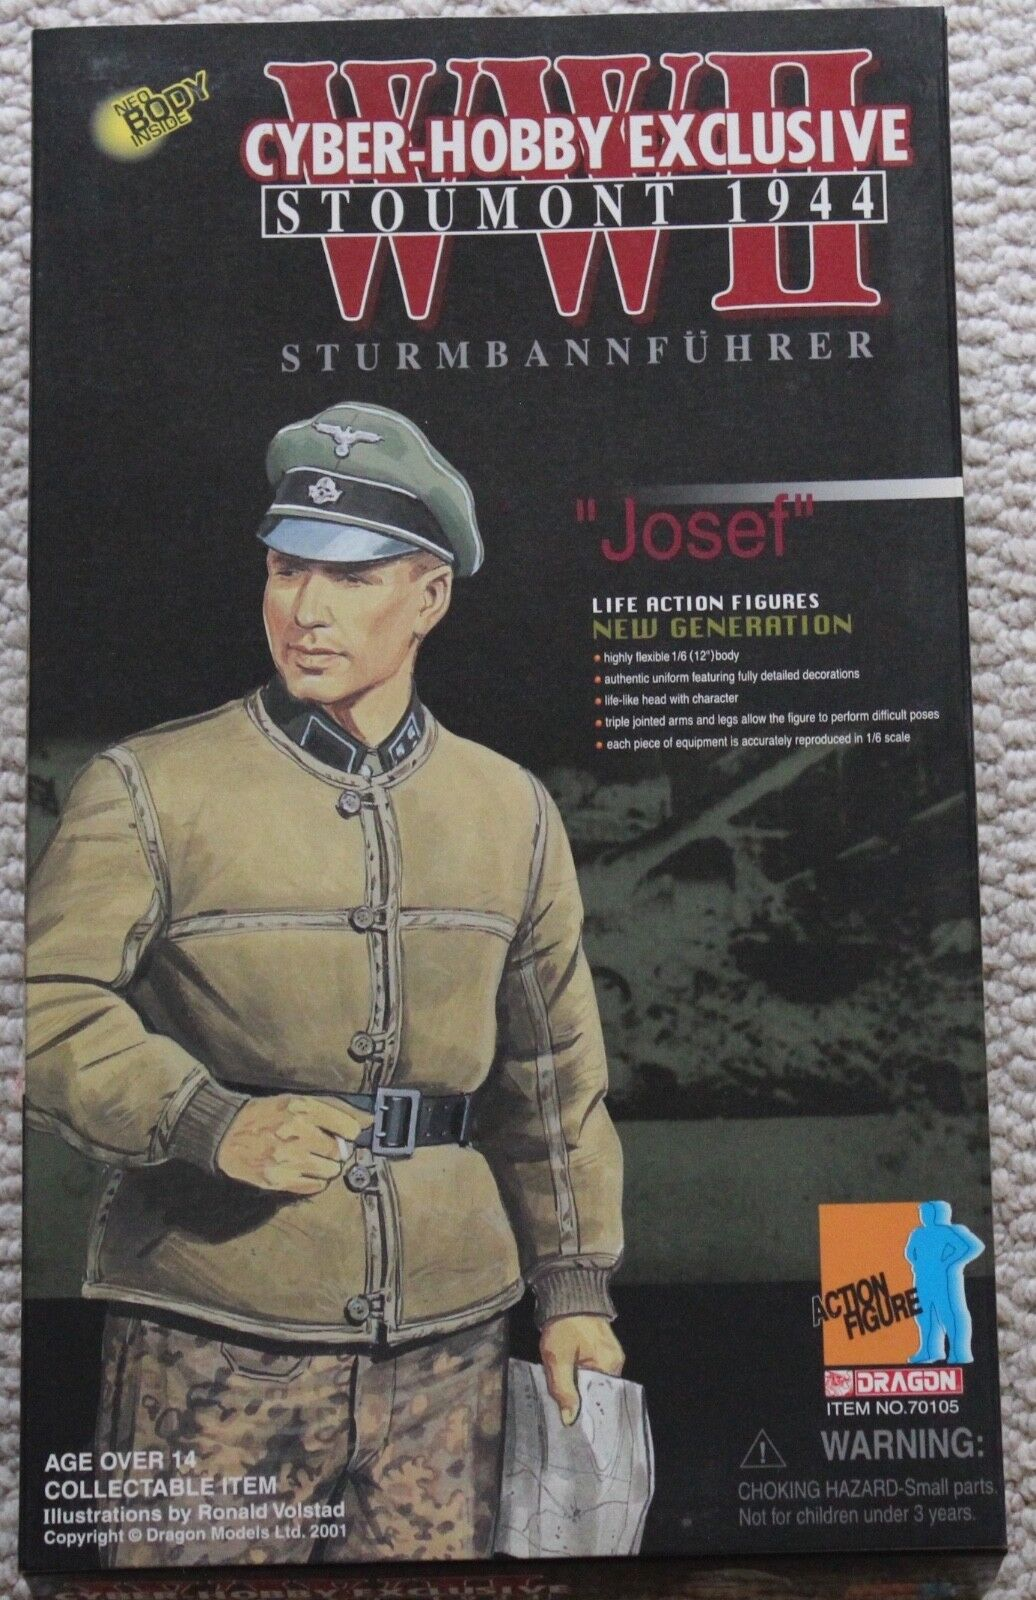 Dragon Action figure ww11 allemand Josef 1 6 12  70105 DID Cyber Hobby Hot toy